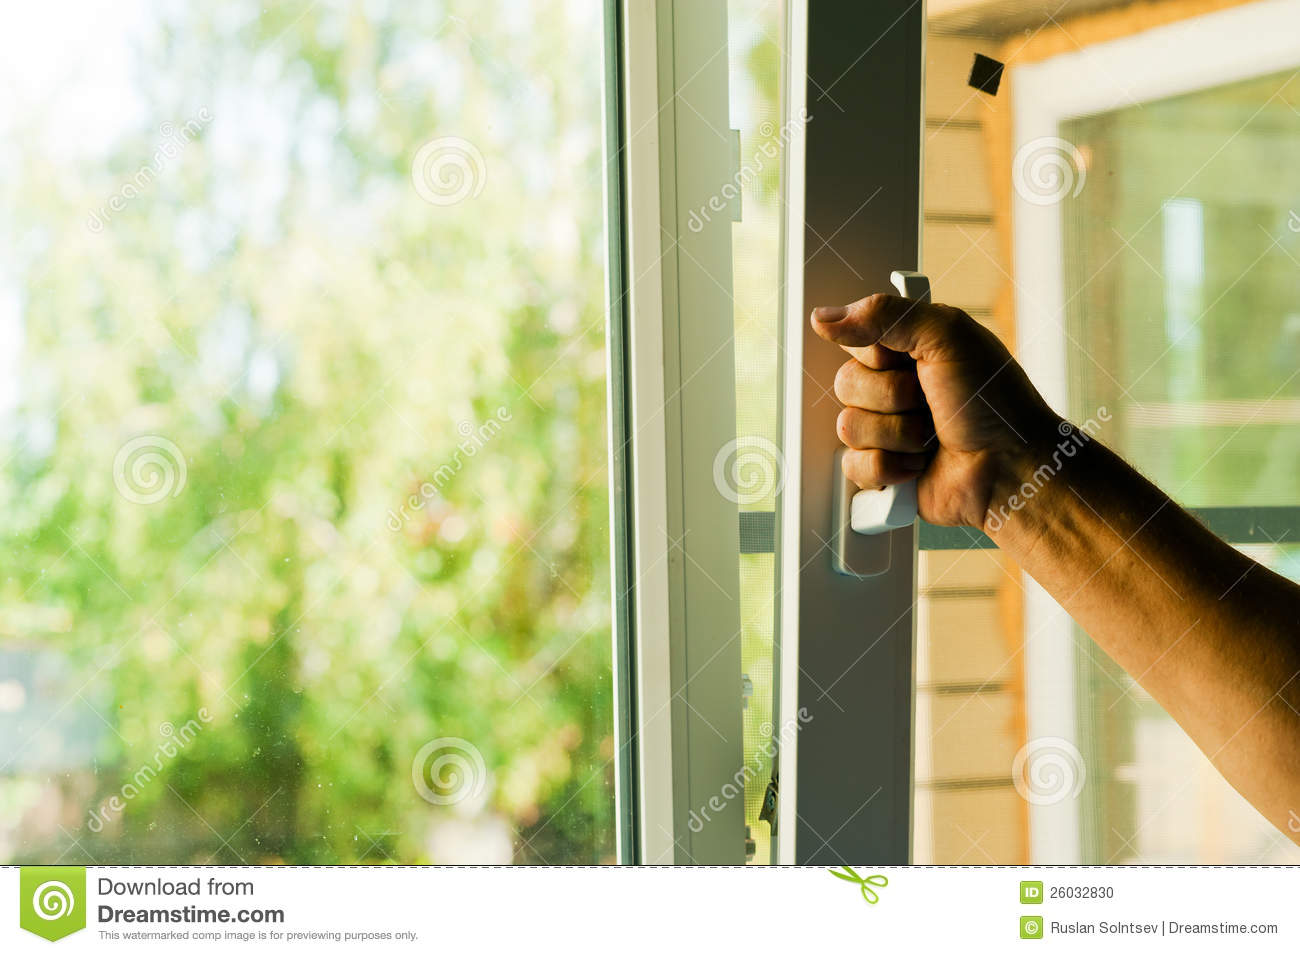 Plastic windows stock photo image 26032830 for Window plastic